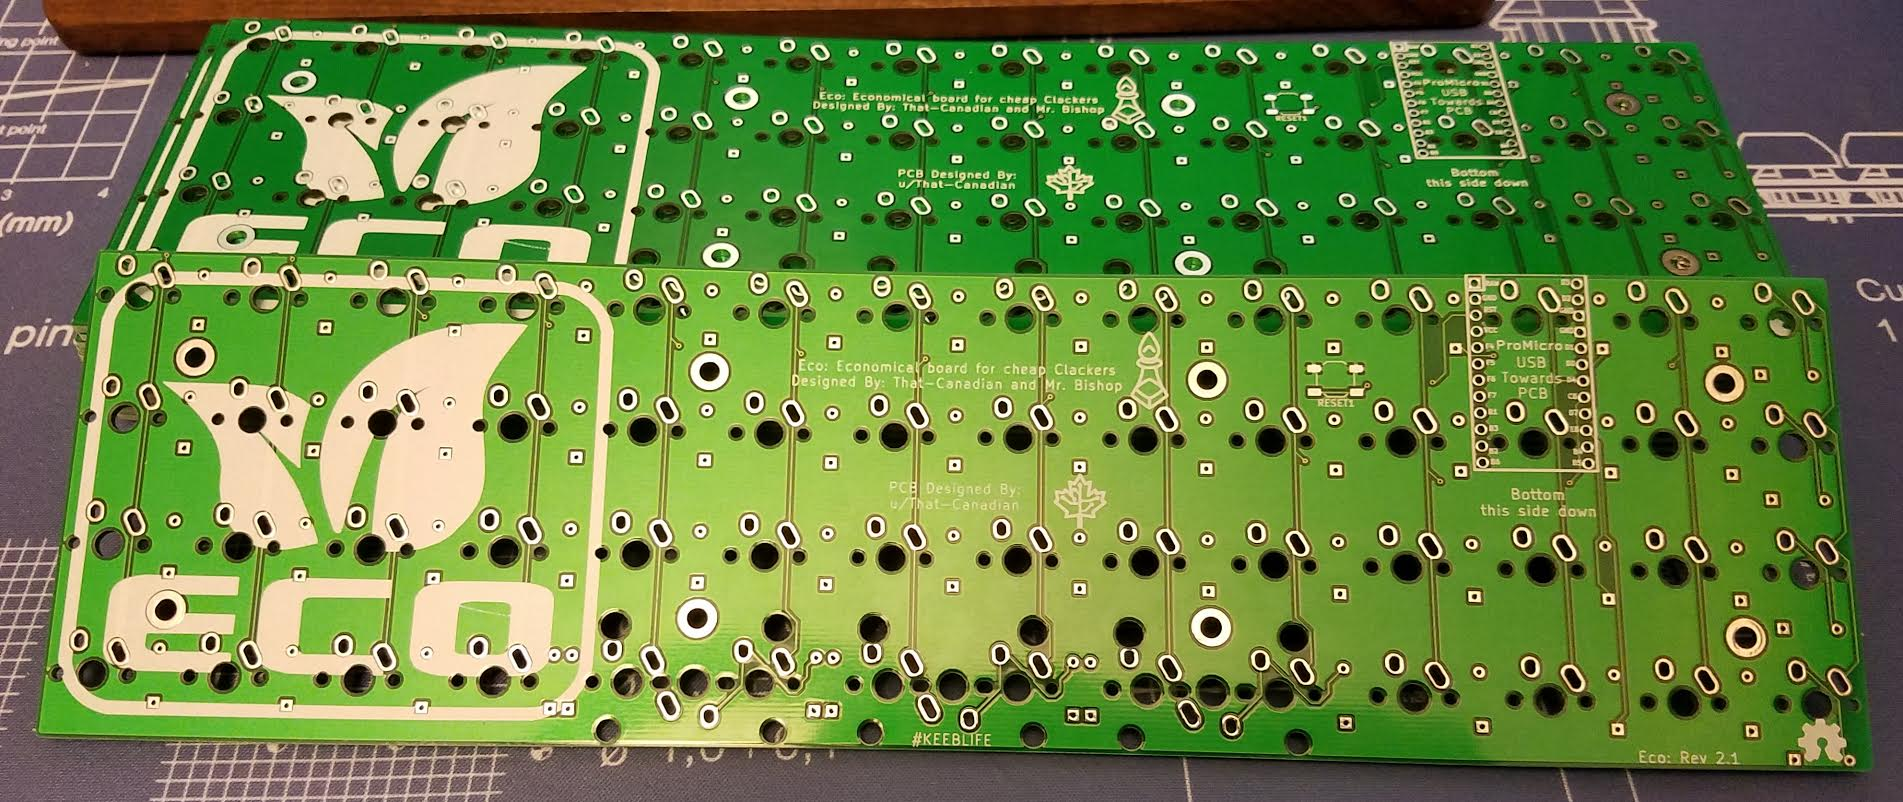 [CLOSED] ECO PCB V1